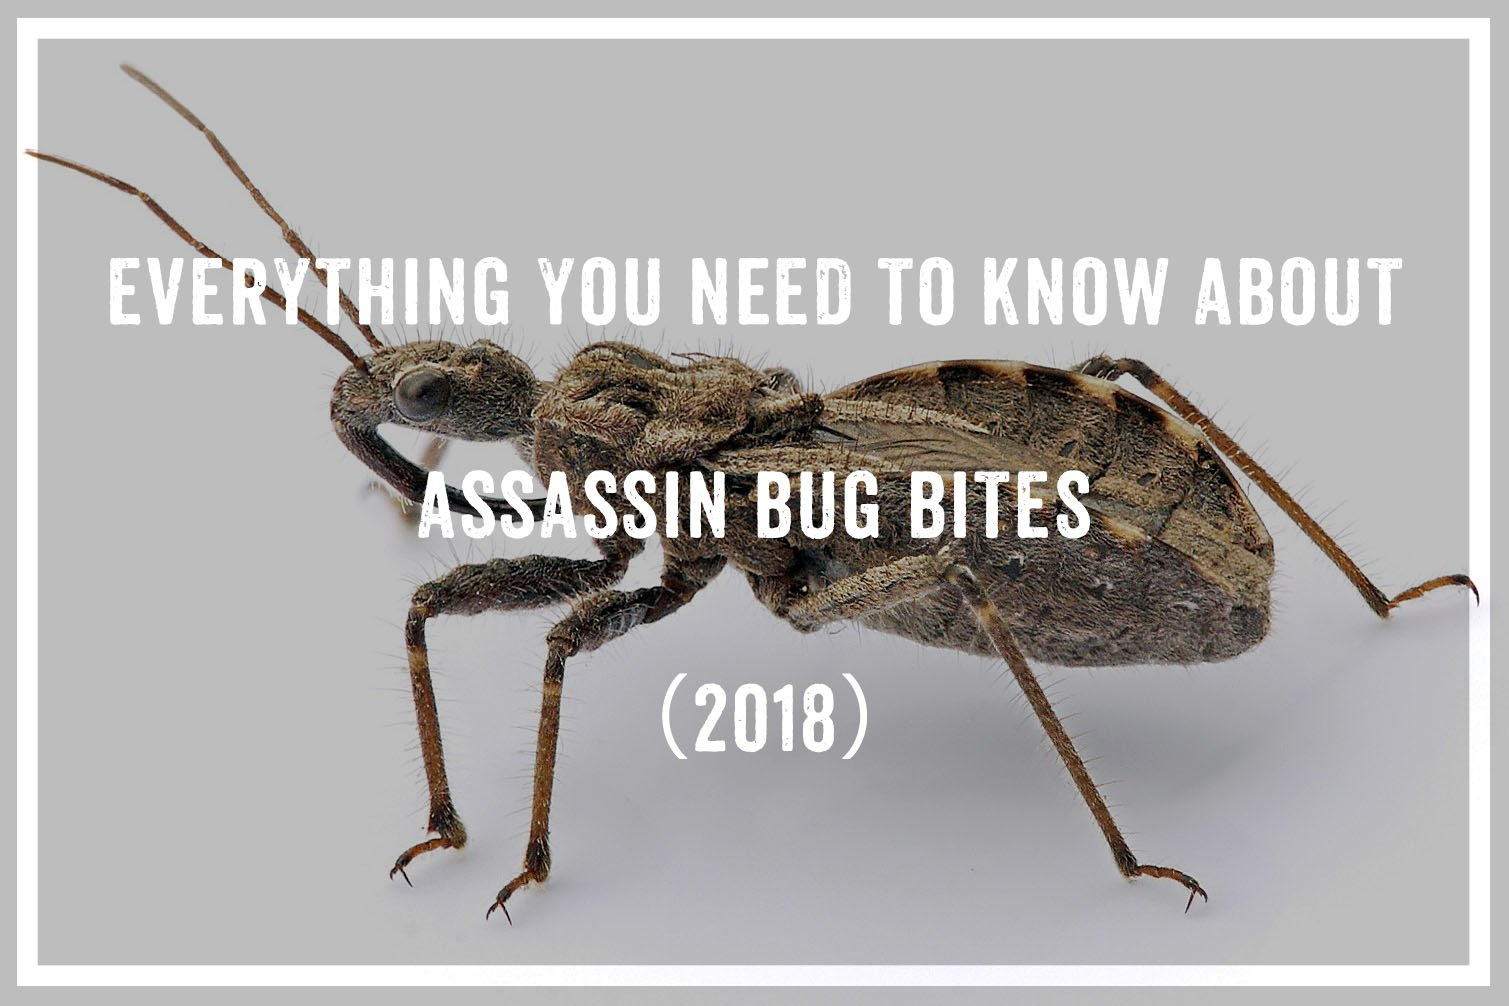 Everything You Need To Know About Assassin Bug Bites (2018